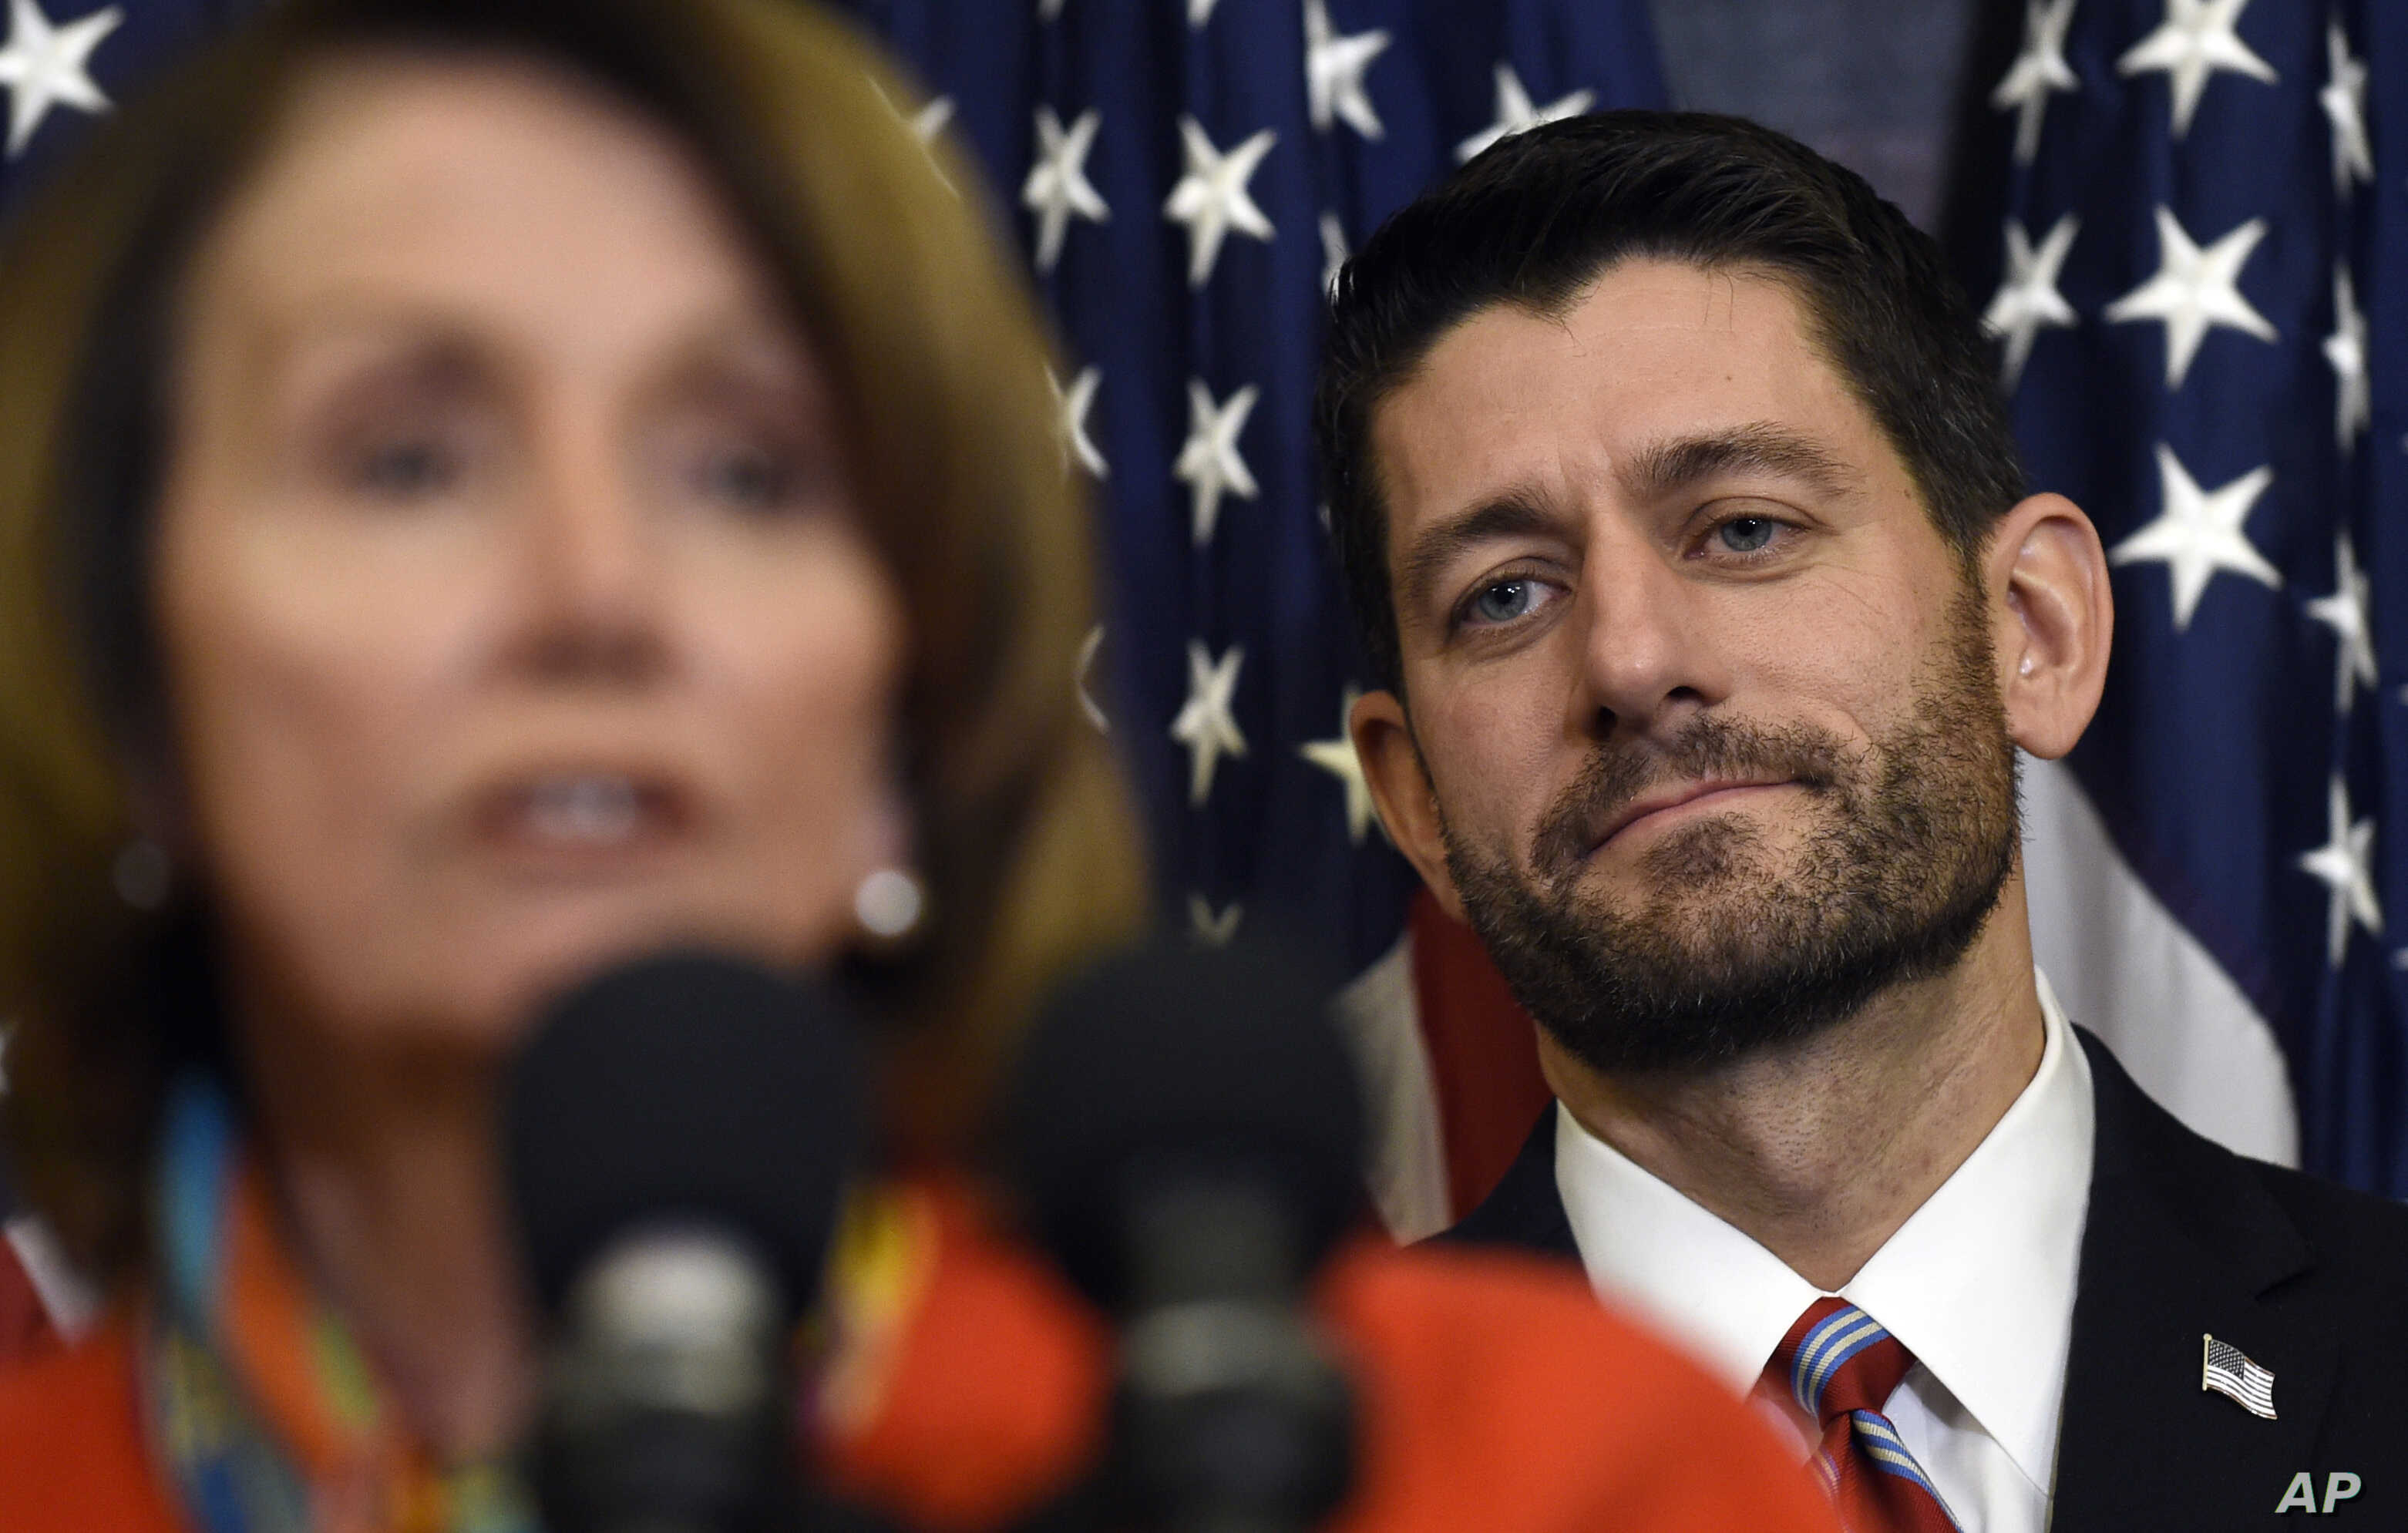 House Speaker Paul Ryan of Wis. listens as House Minority Leader Nancy Pelosi of Calif. speaks on Capitol Hill in Washington, Dec. 9, 2015, before Ryan signed legislation that changes how the nation's public schools are evaluated, rewriting the landm...